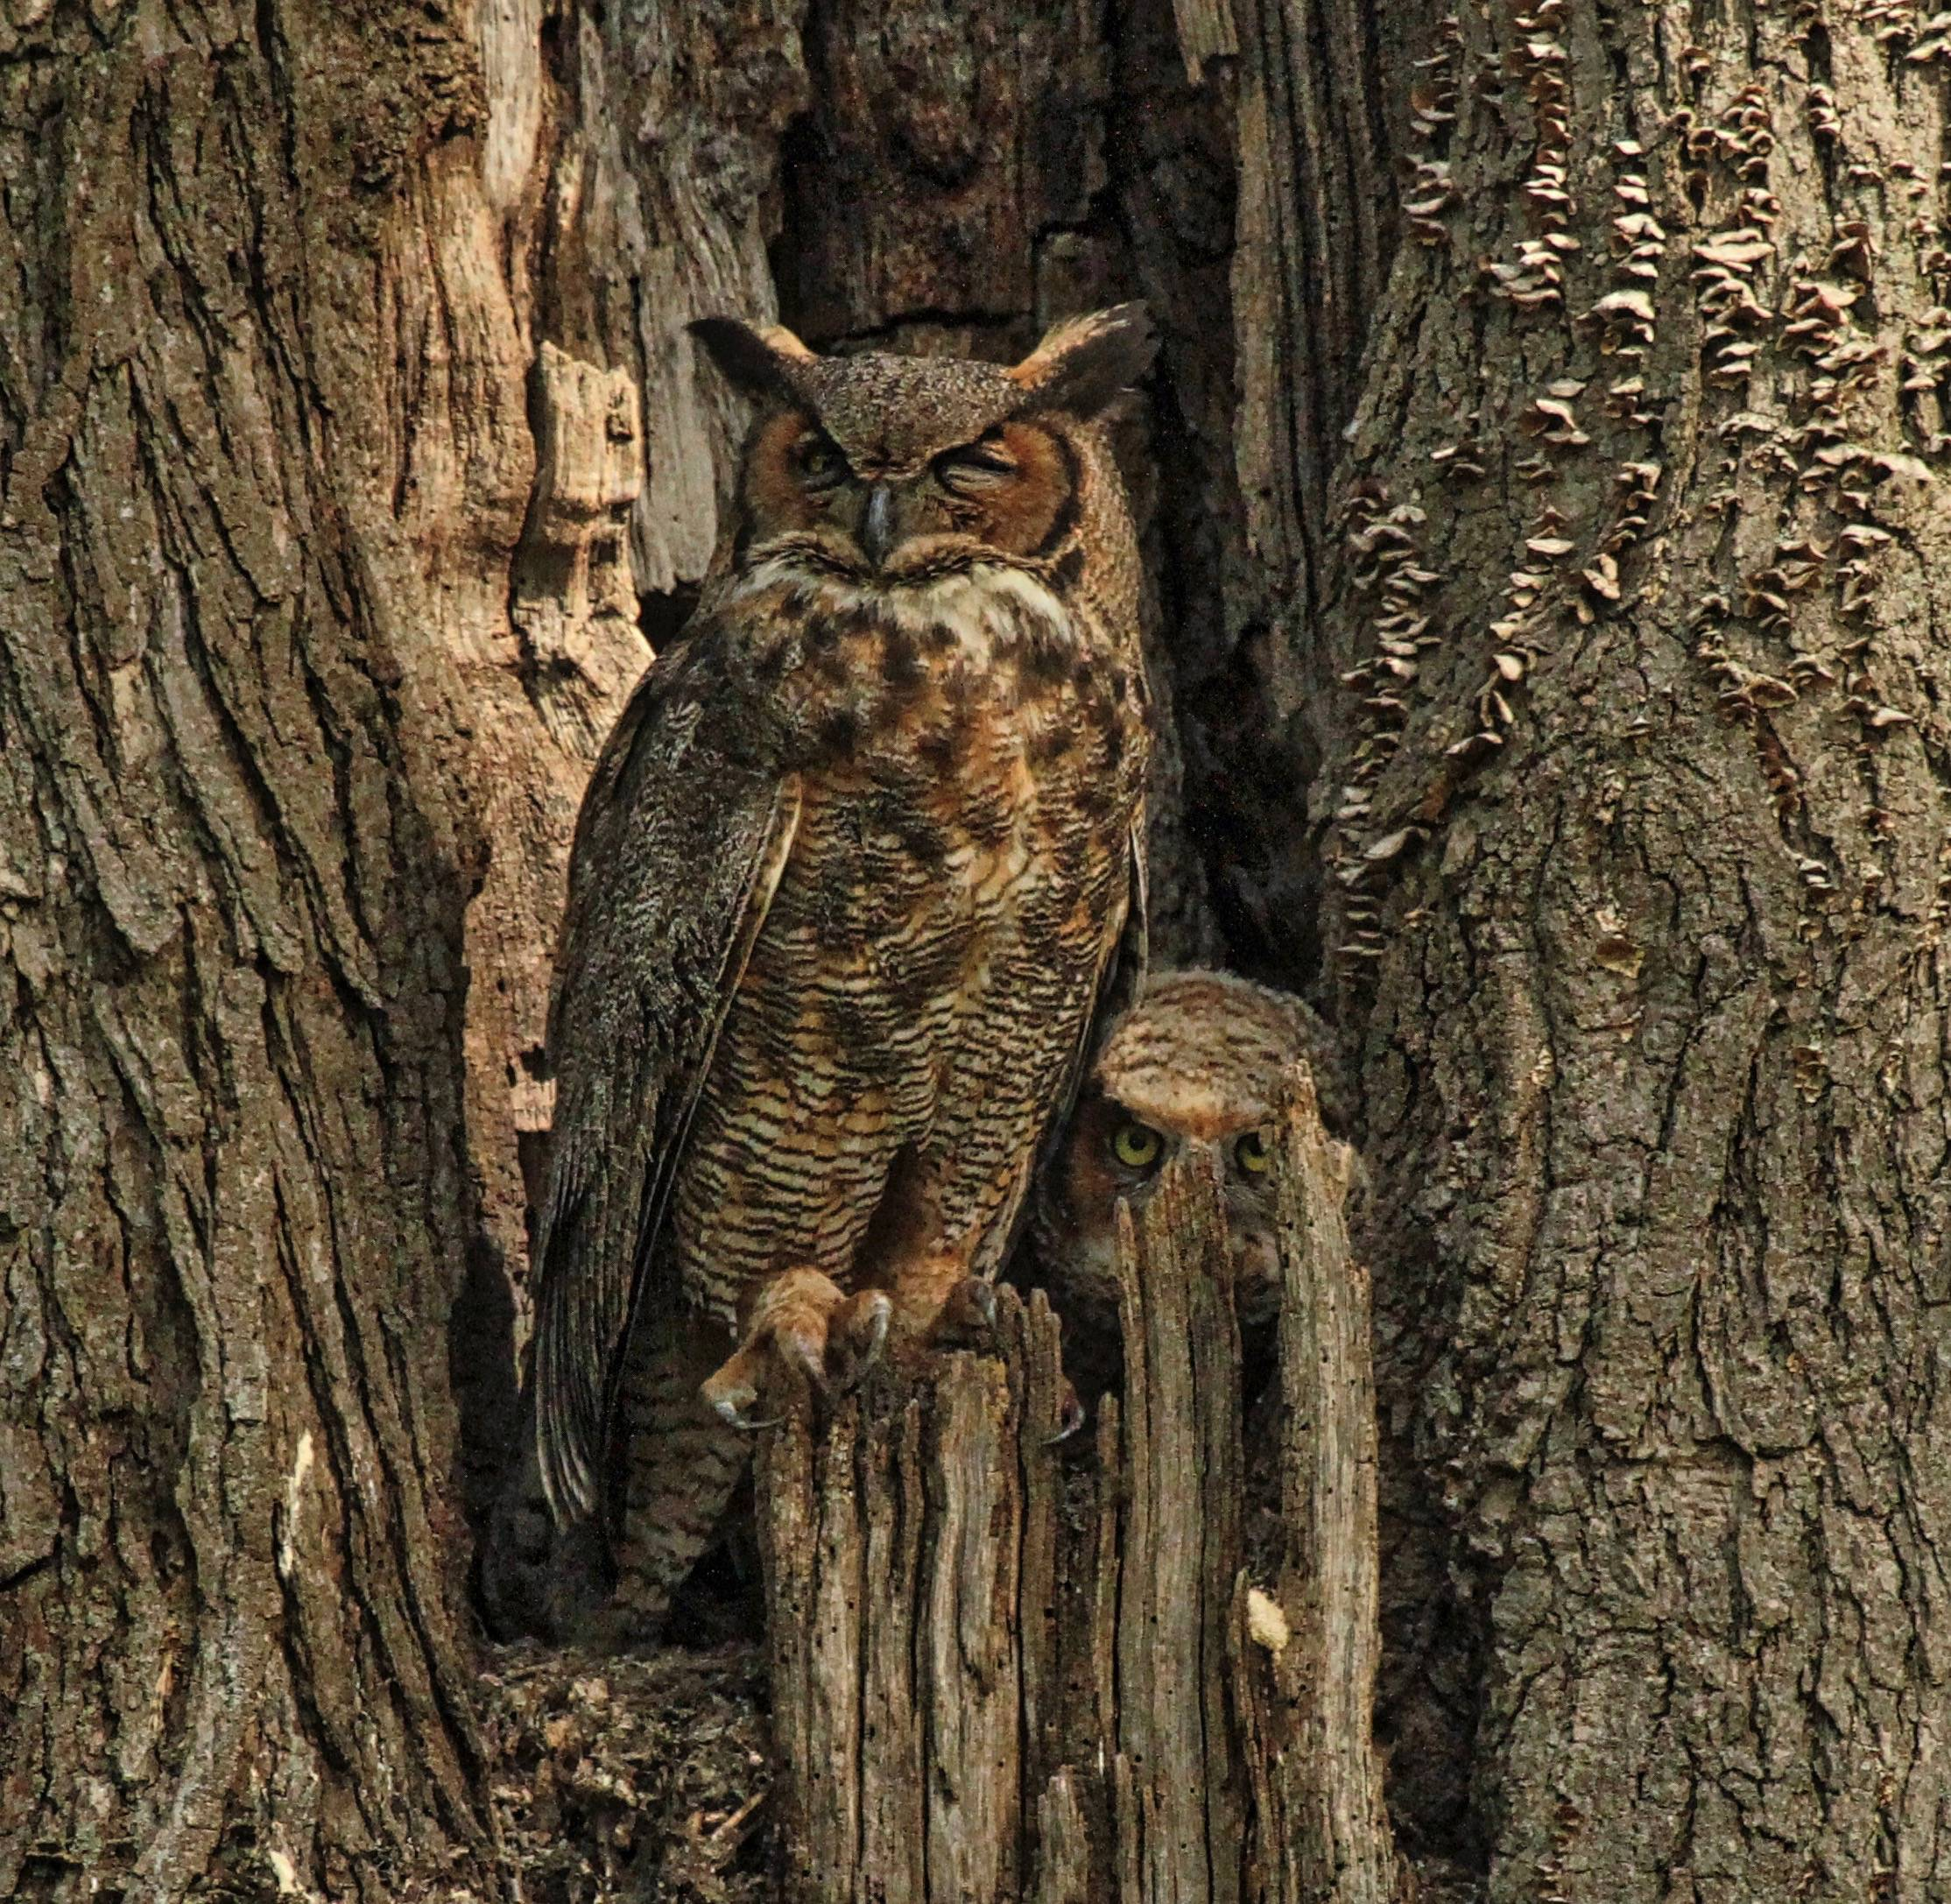 I took this photo of a mother Great Horned Owl with one of her babies in Fabyan park in Batavia.